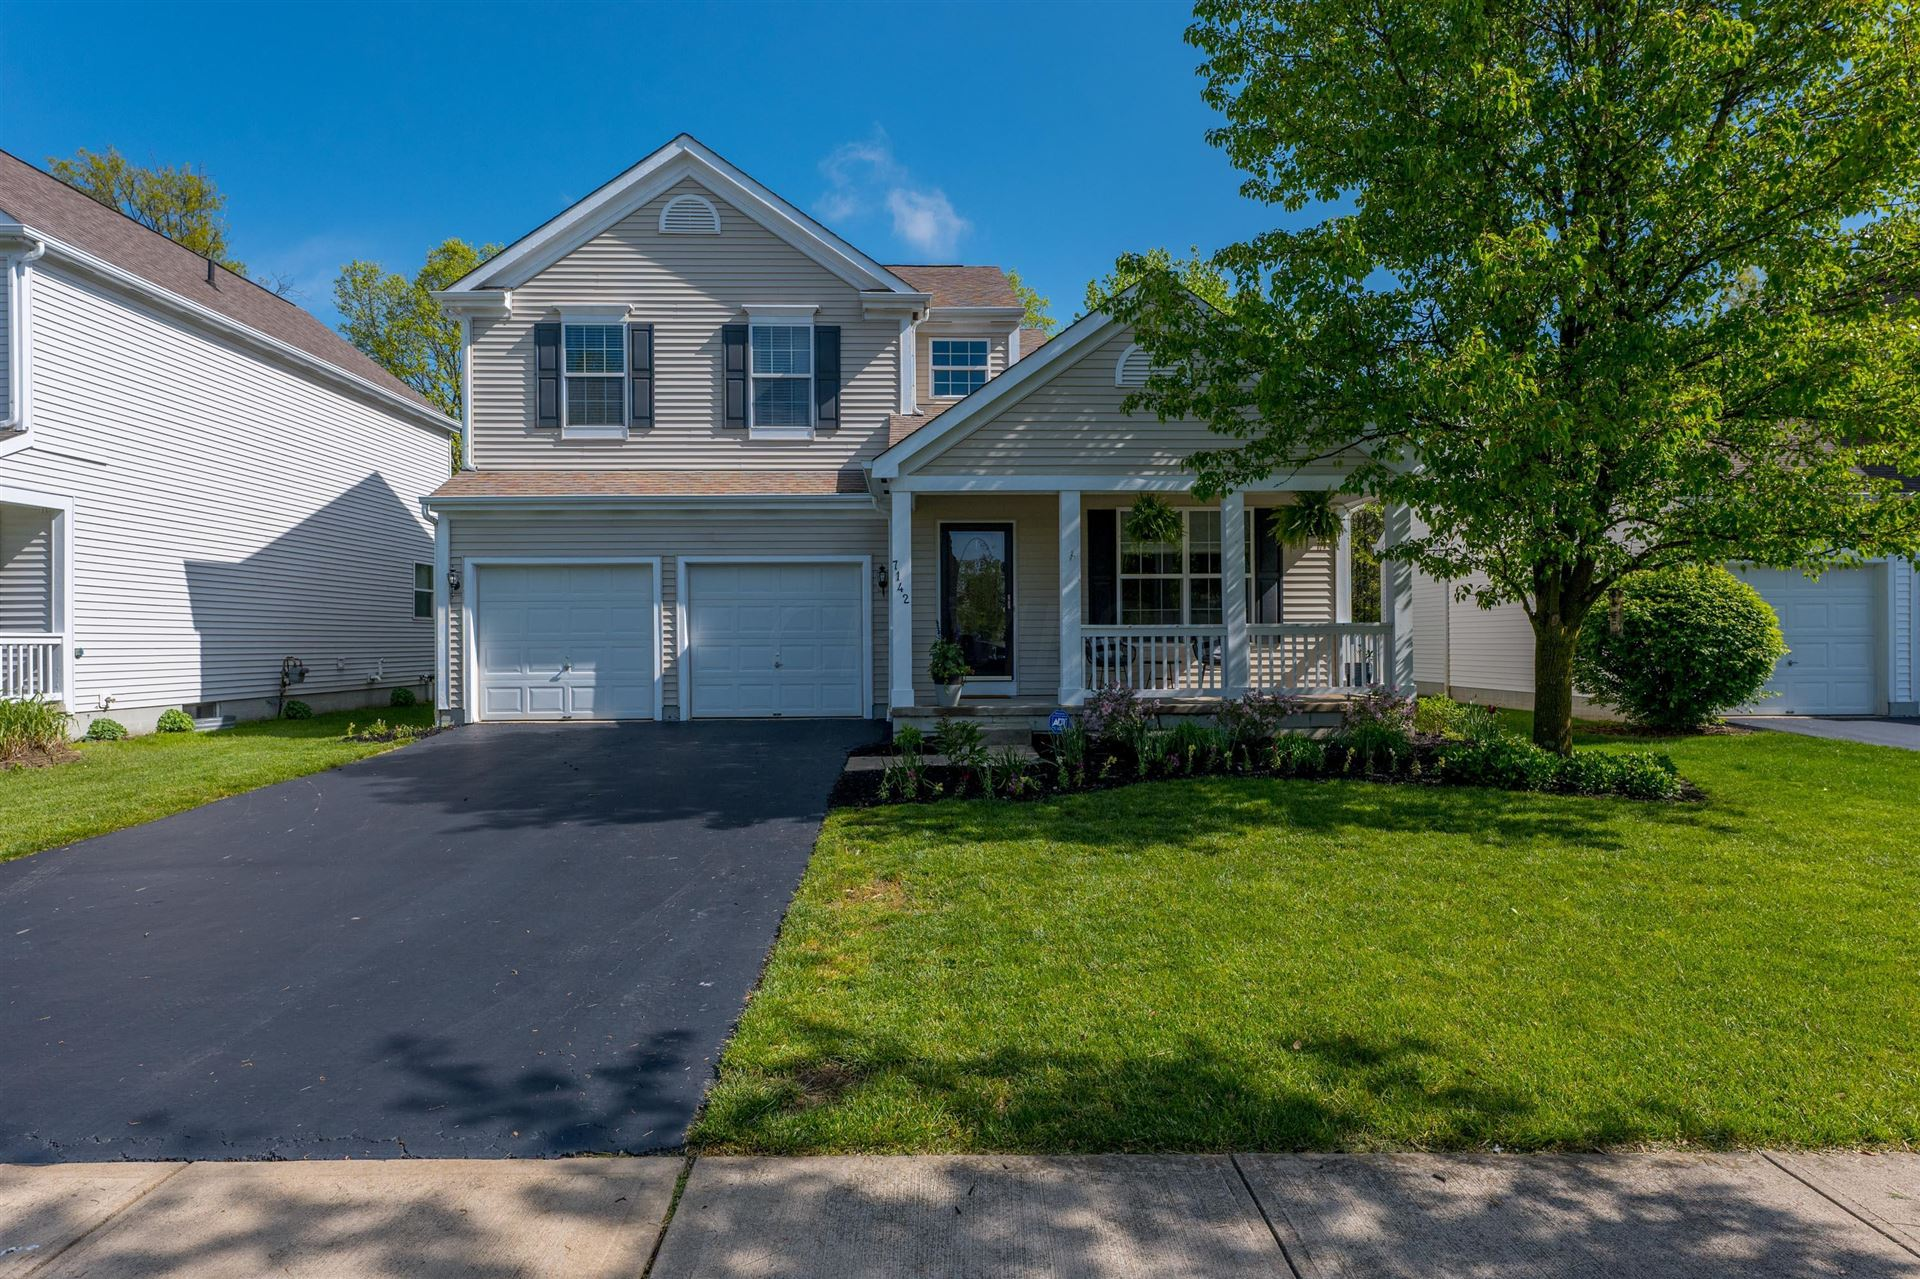 Photo of 7142 Upper Albany Drive, New Albany, OH 43054 (MLS # 221015320)